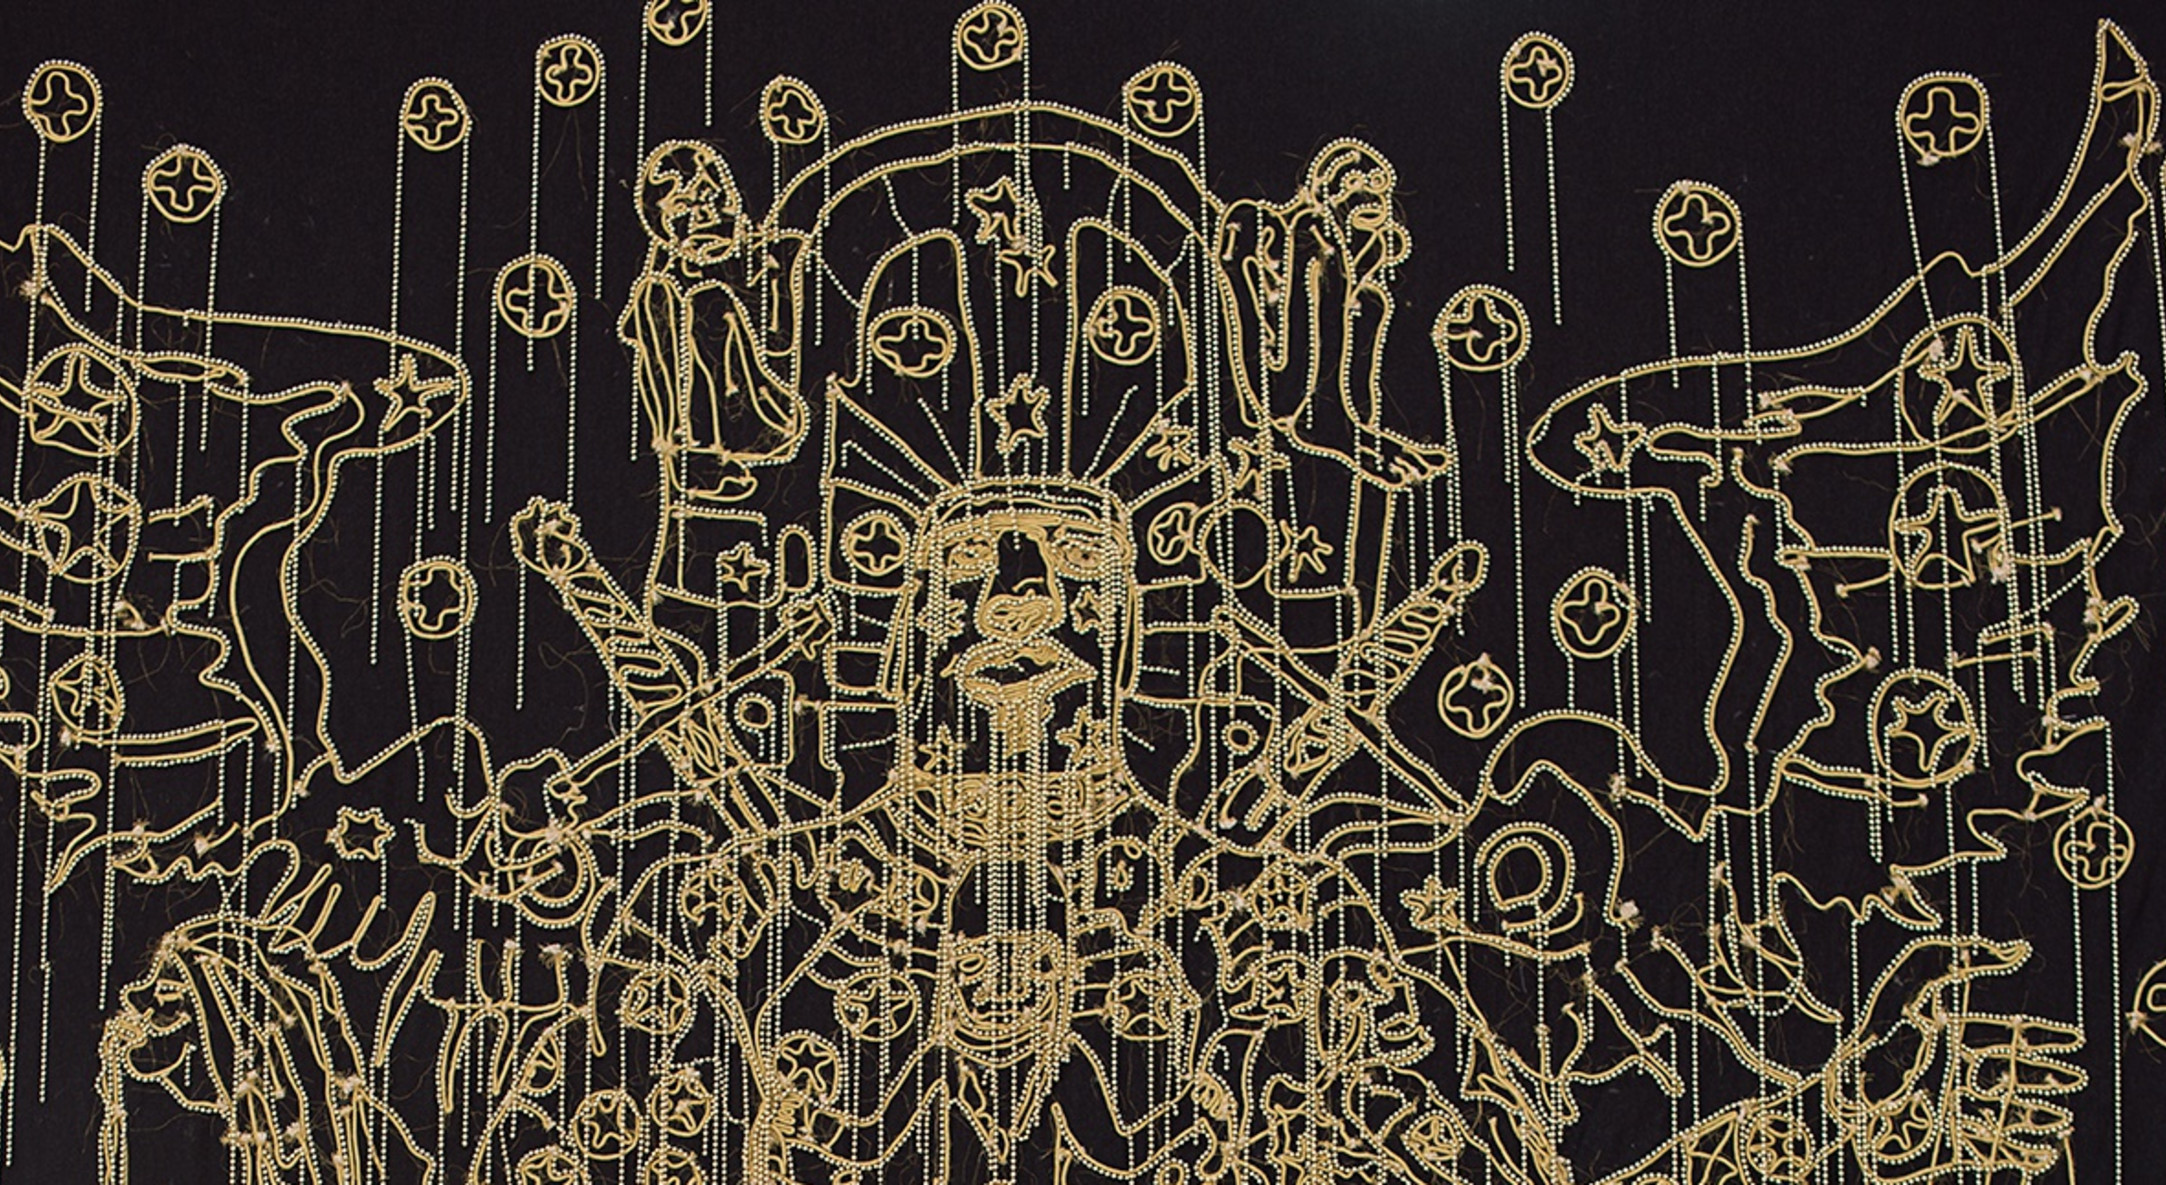 Detail of Hew Locke, Chariots of the Gods, 2009, Cord and bead embroidery on cloth, 480 x 375 cm, 189 x 147 5/8 in